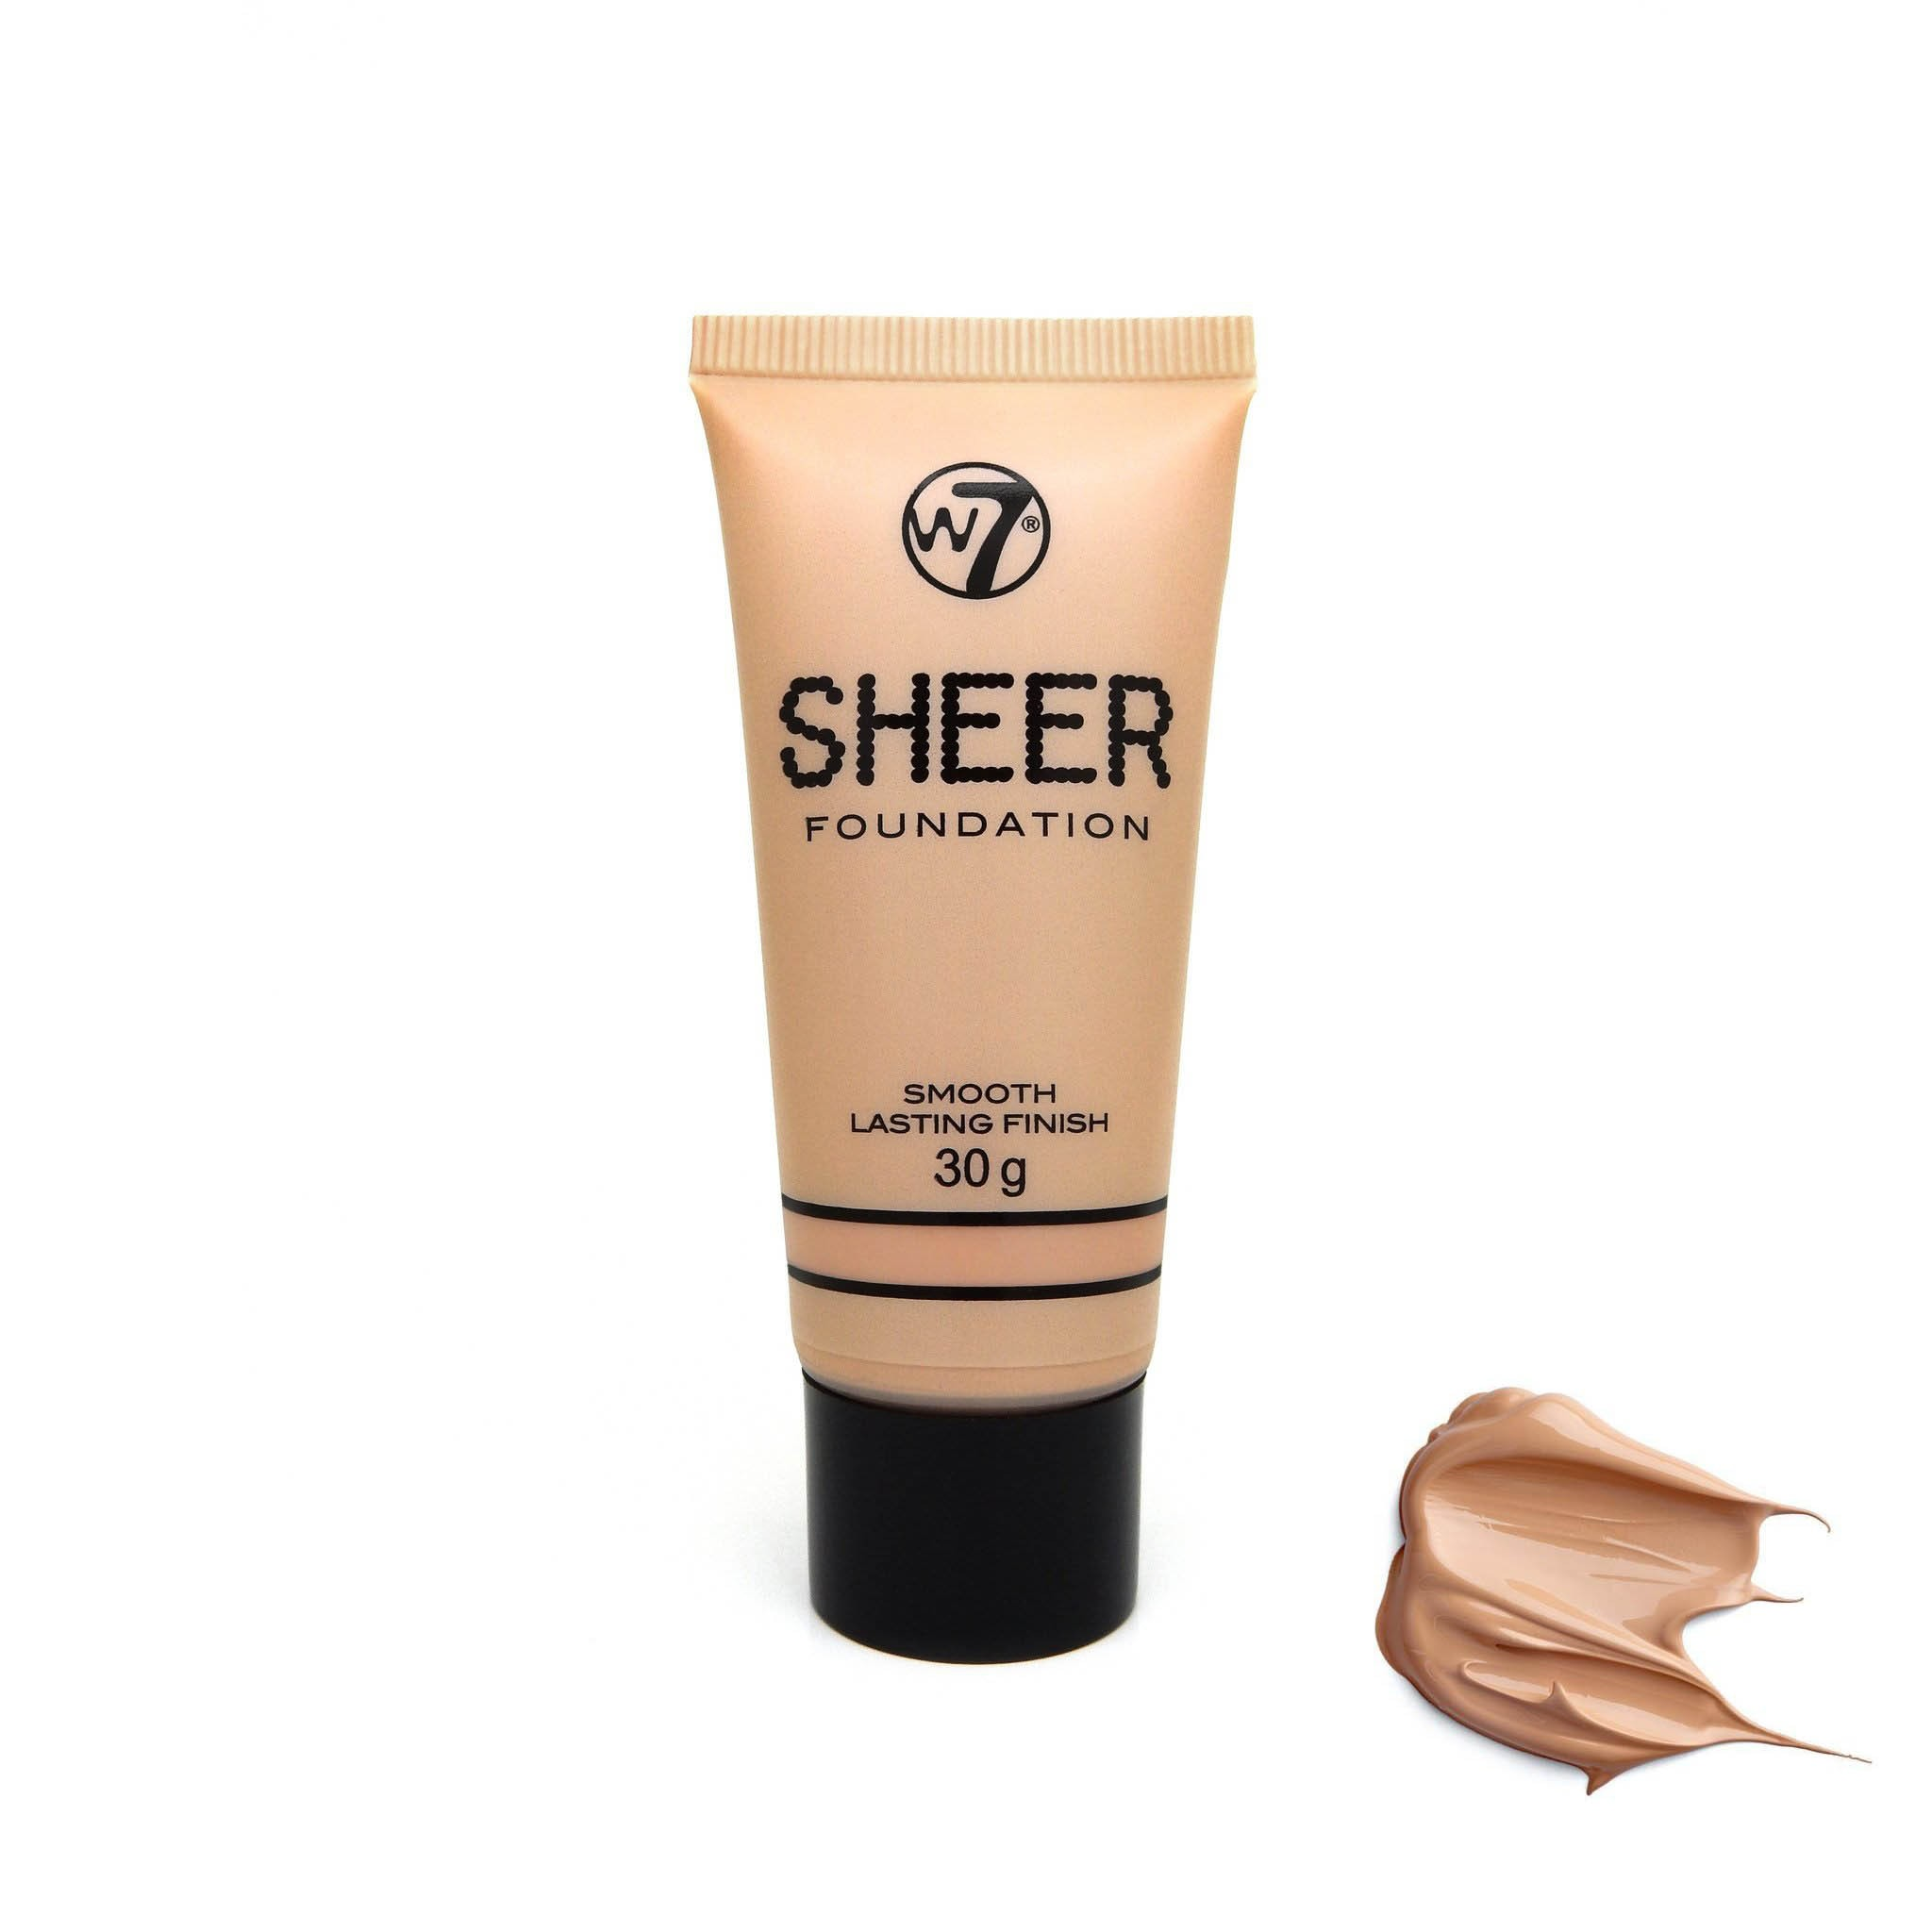 Sheer Foundation